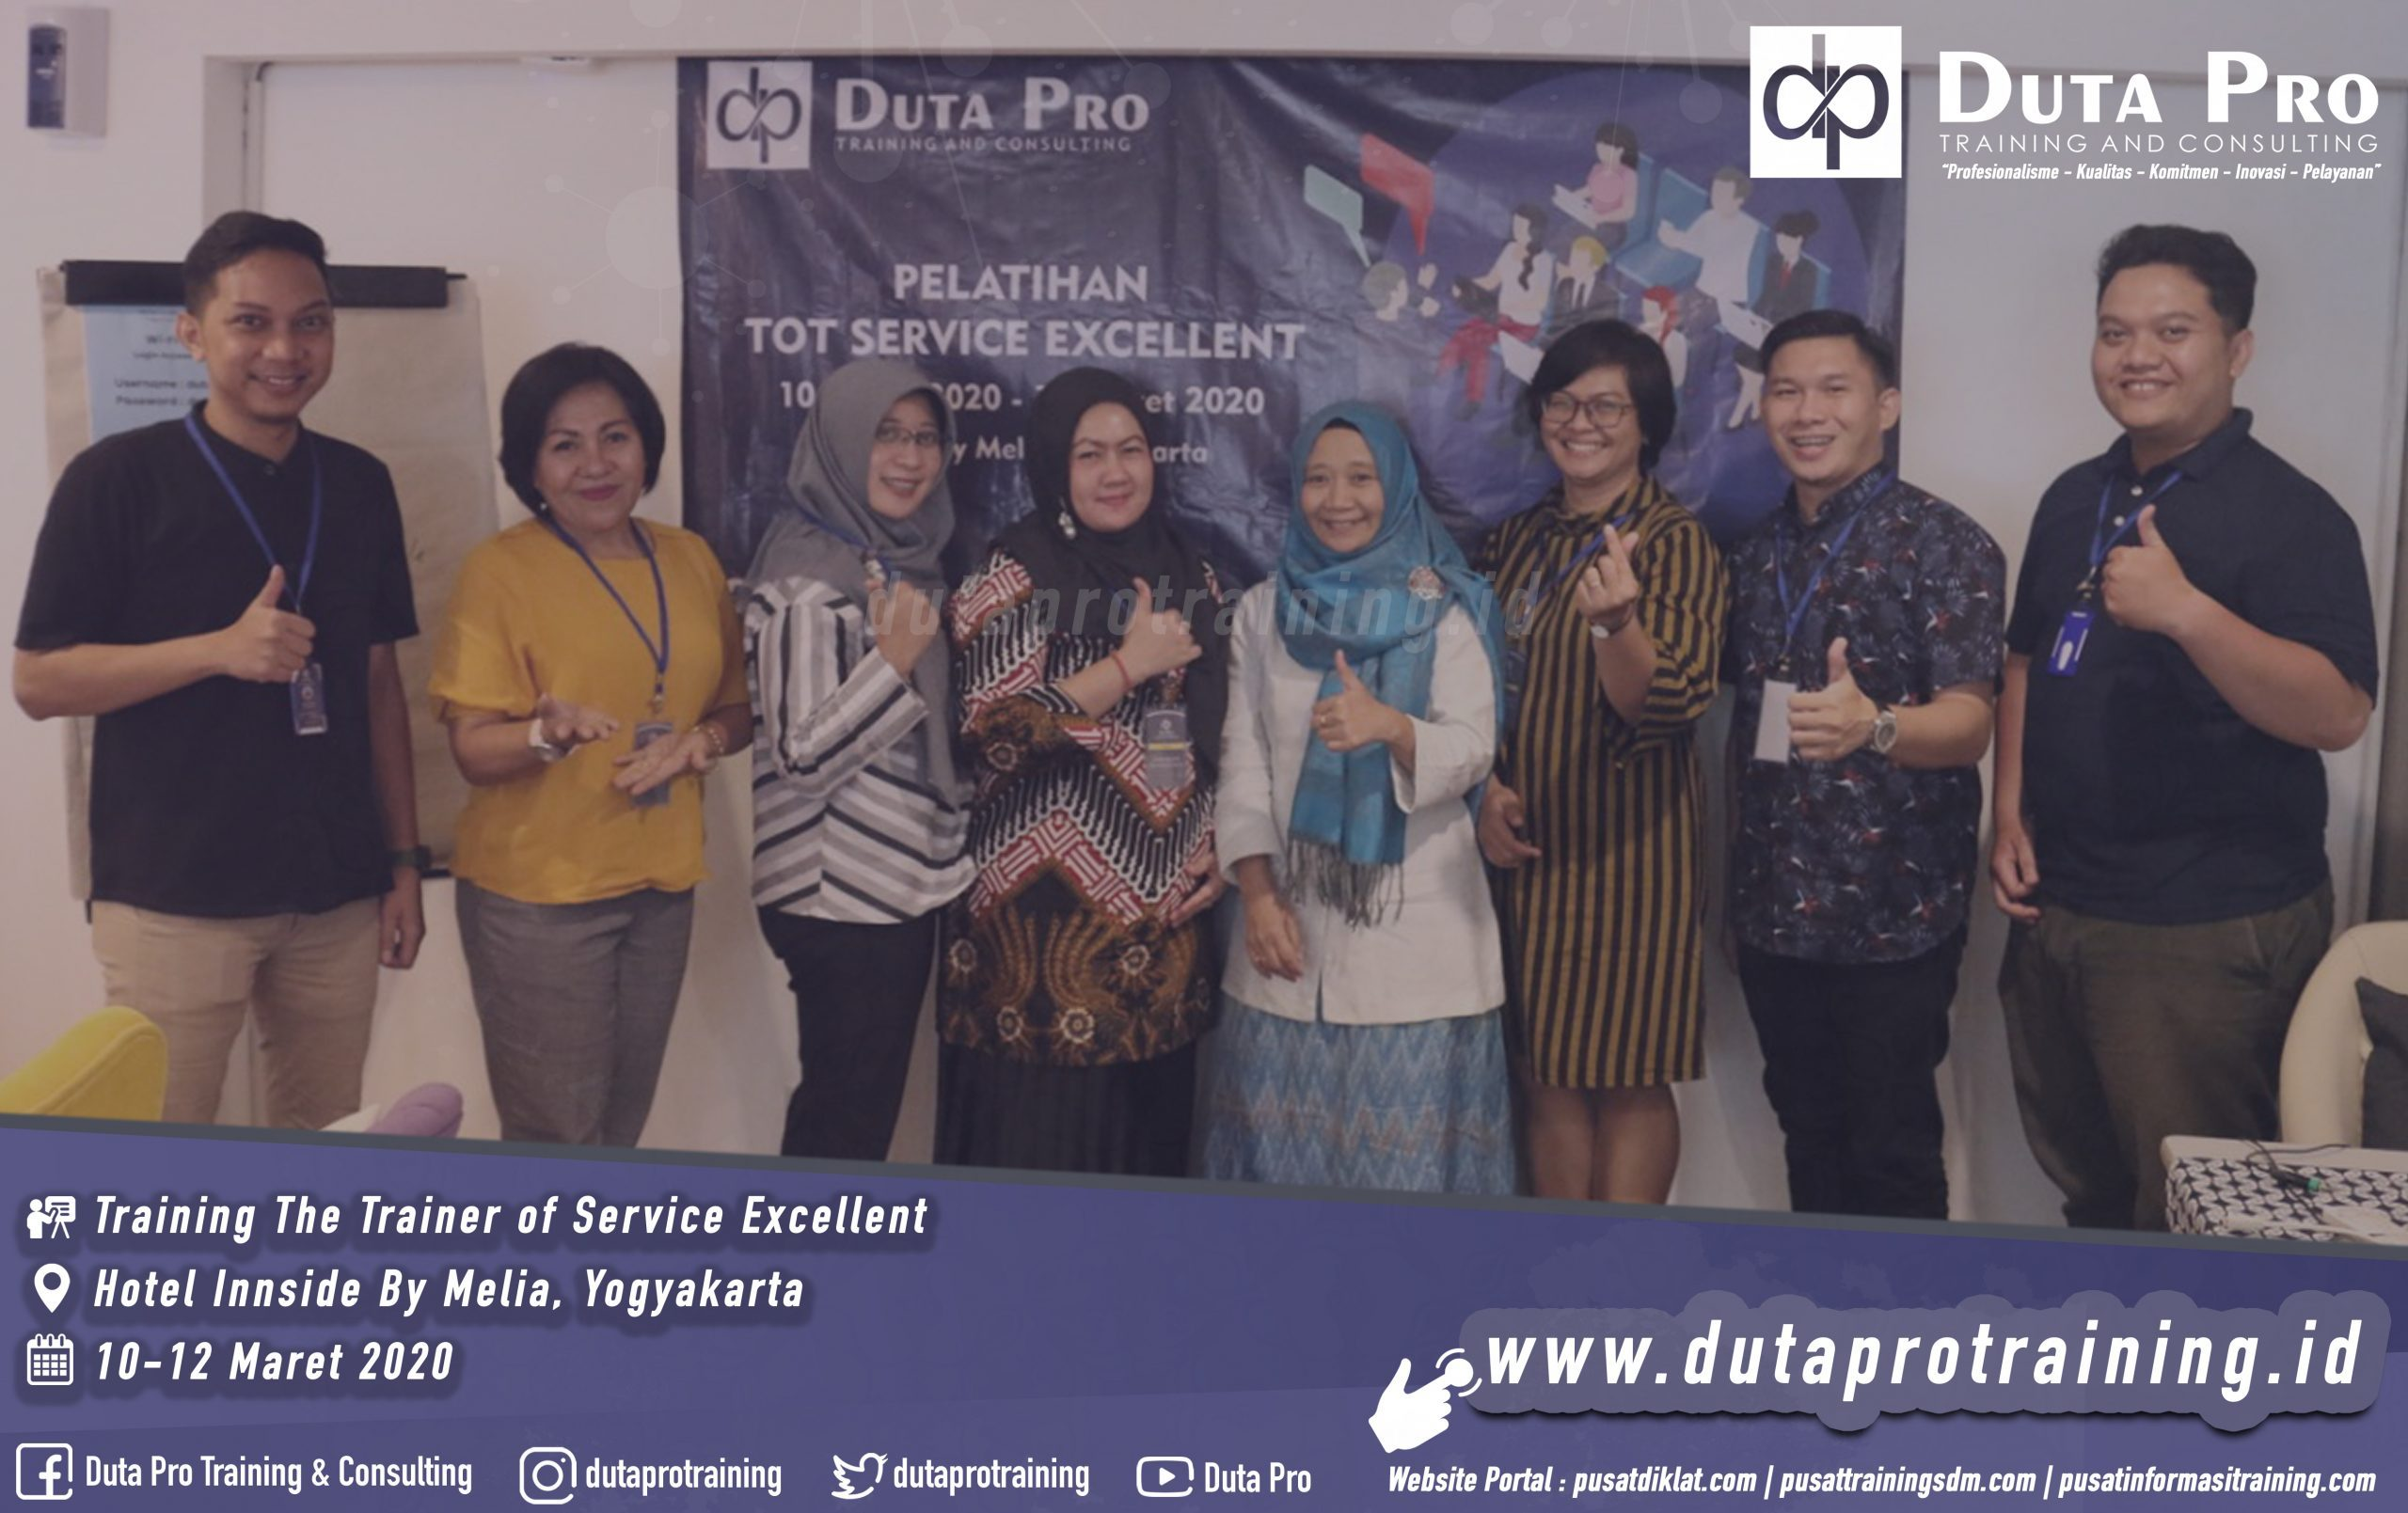 Training The Trainer of Service Excellent Yogyakarta Galeri Website scaled 2559x1609 - Training Risk Profiling and Reporting